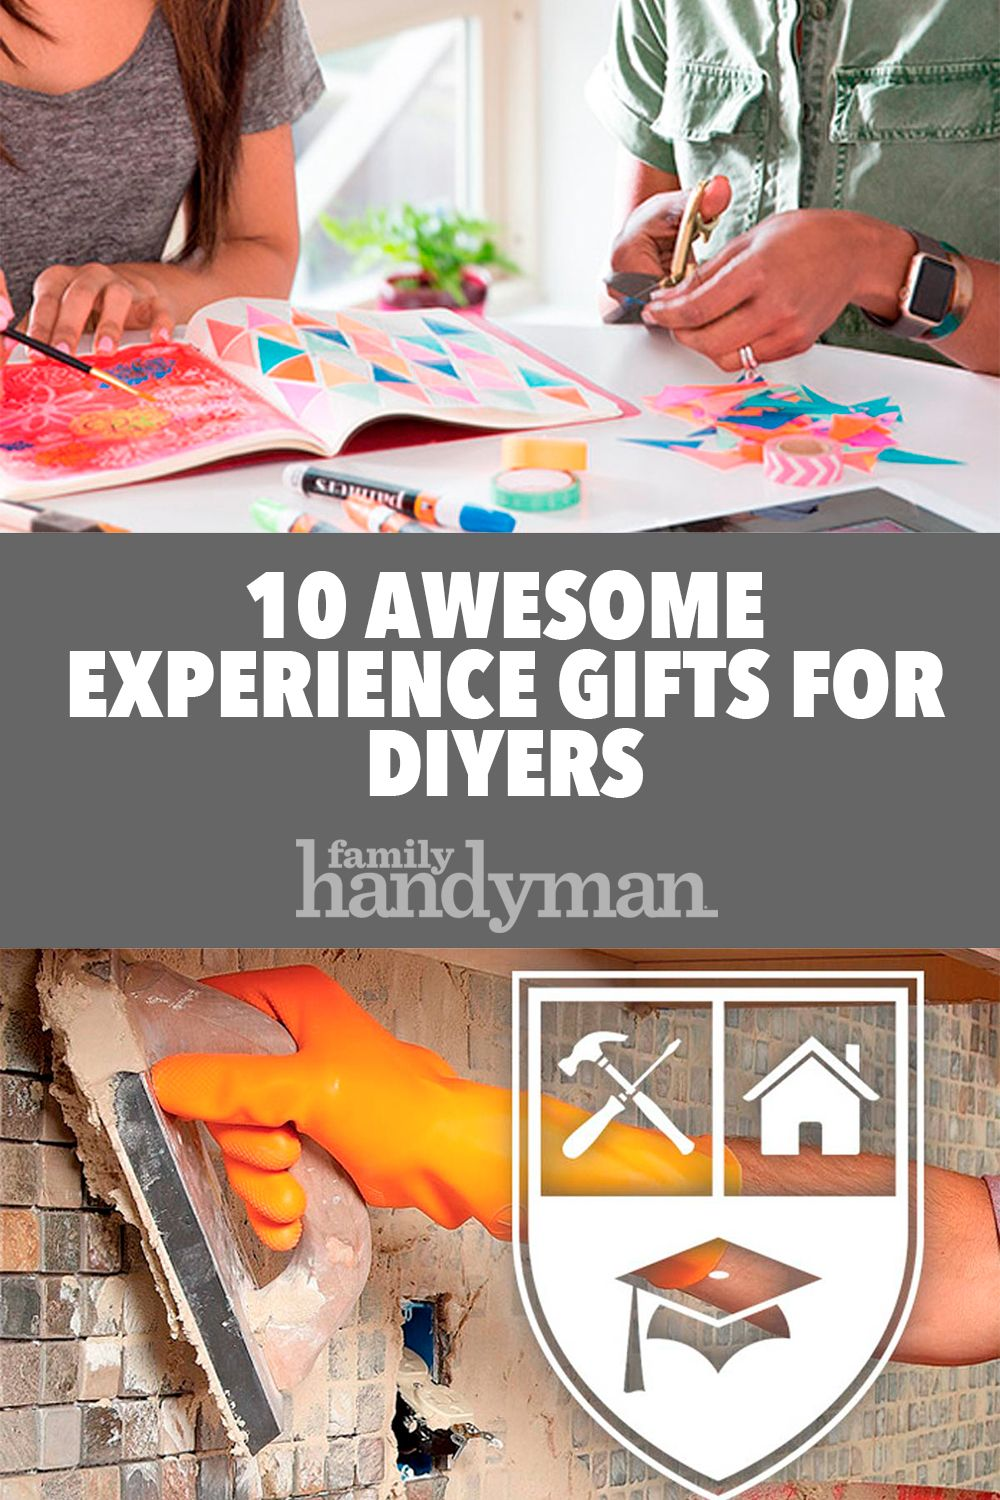 10 Awesome Experience Gifts For Diyers With Images Experience Gifts Gifts 10 Things